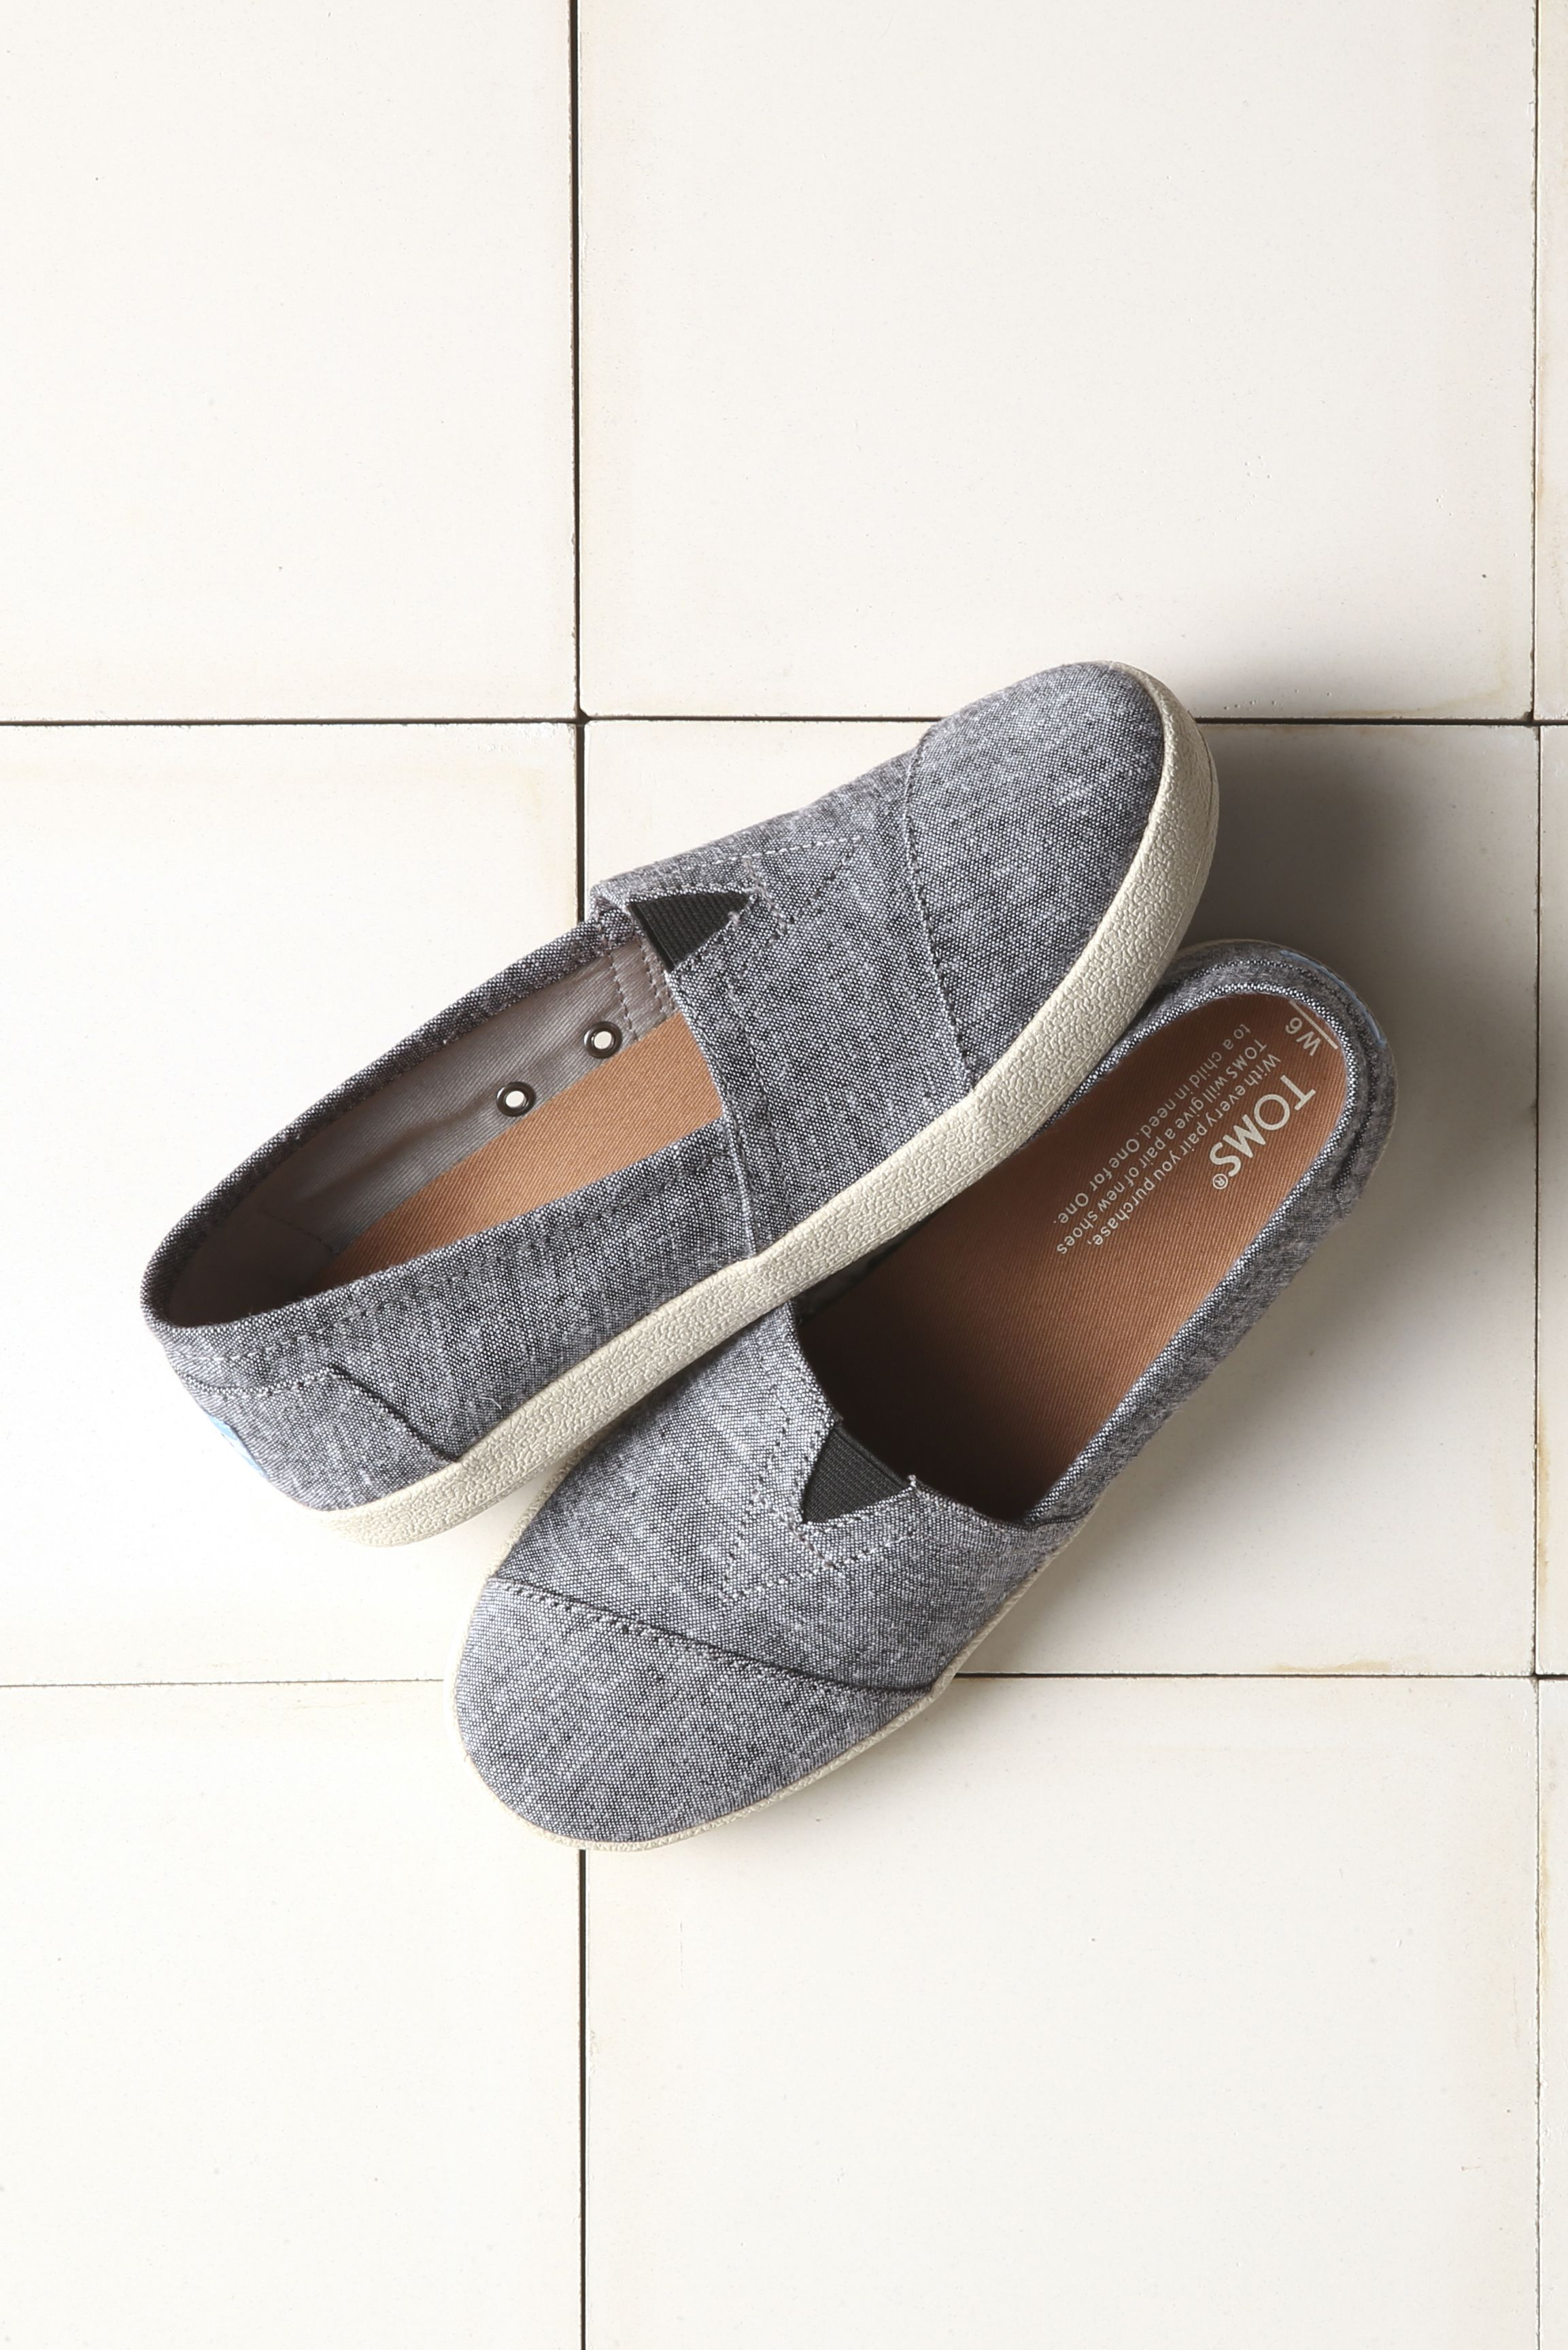 d9858fdb26c6 All the goodness of TOMS Classics with added comfort and durability